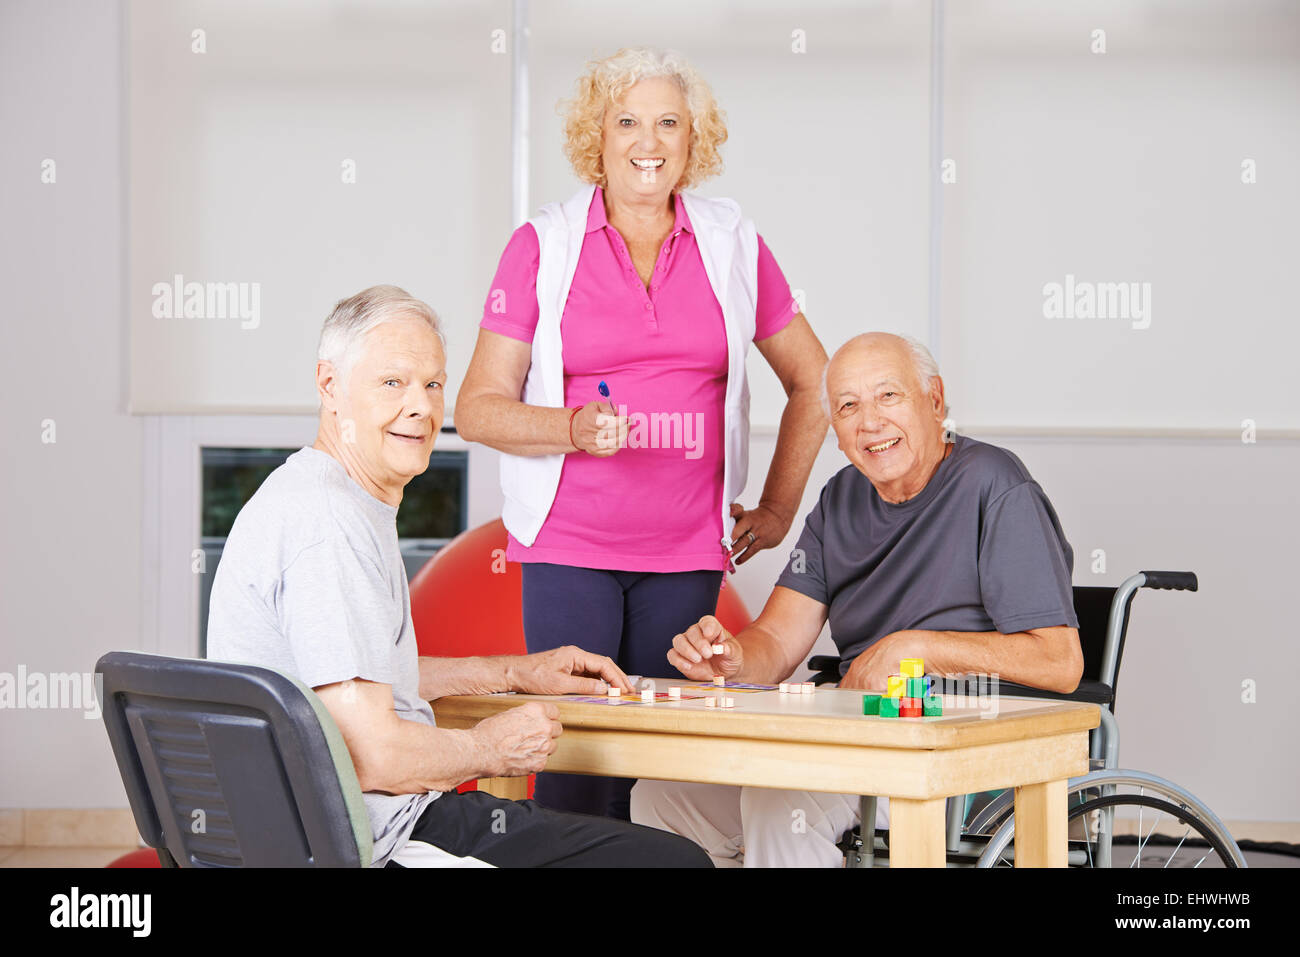 Three happy senior citizens playing Bingo together in a nursing home - Stock Image